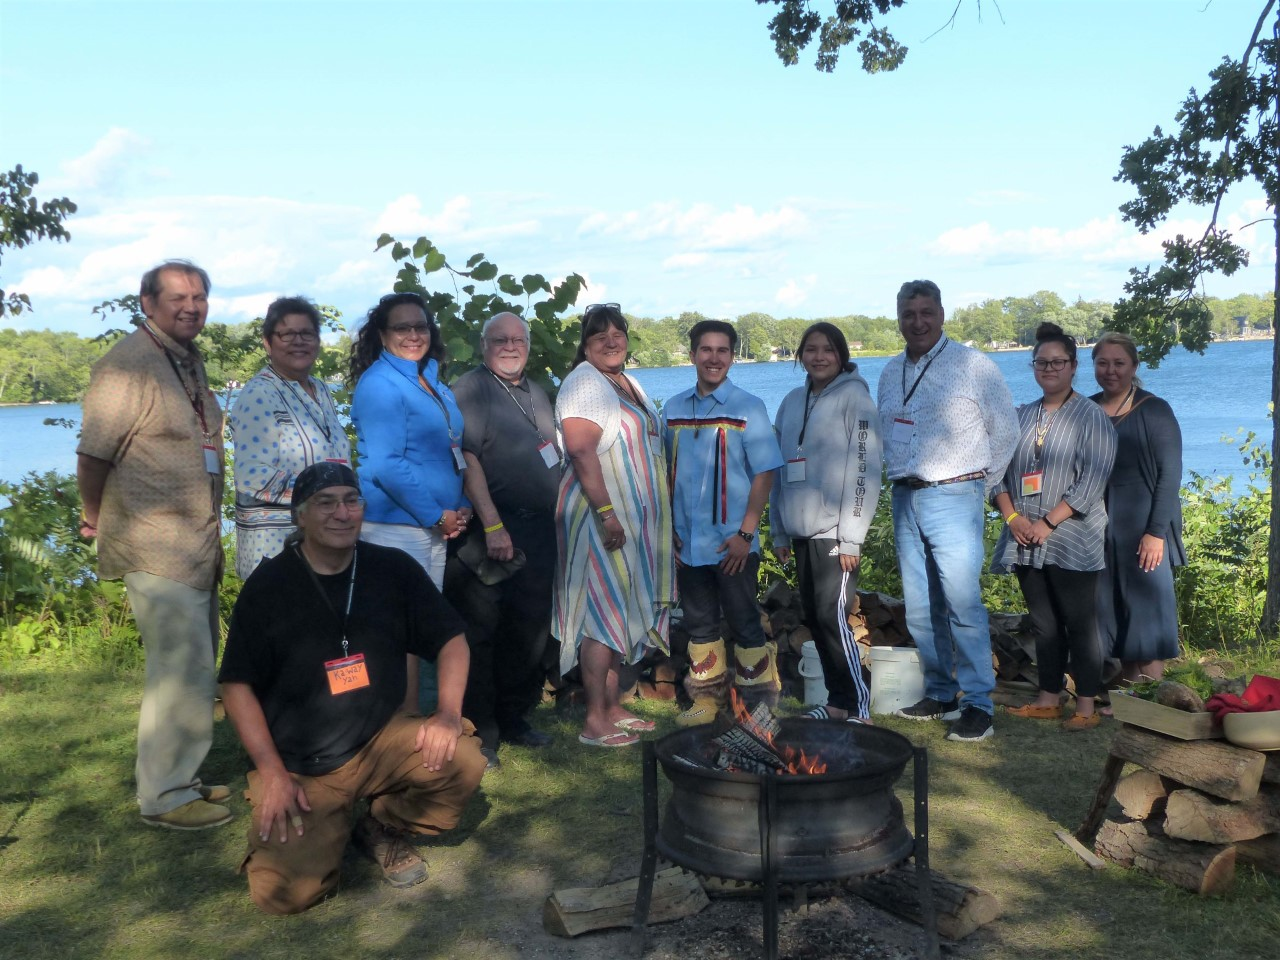 The new National Indigenous Council with firekeeper Ka-Way Yah.